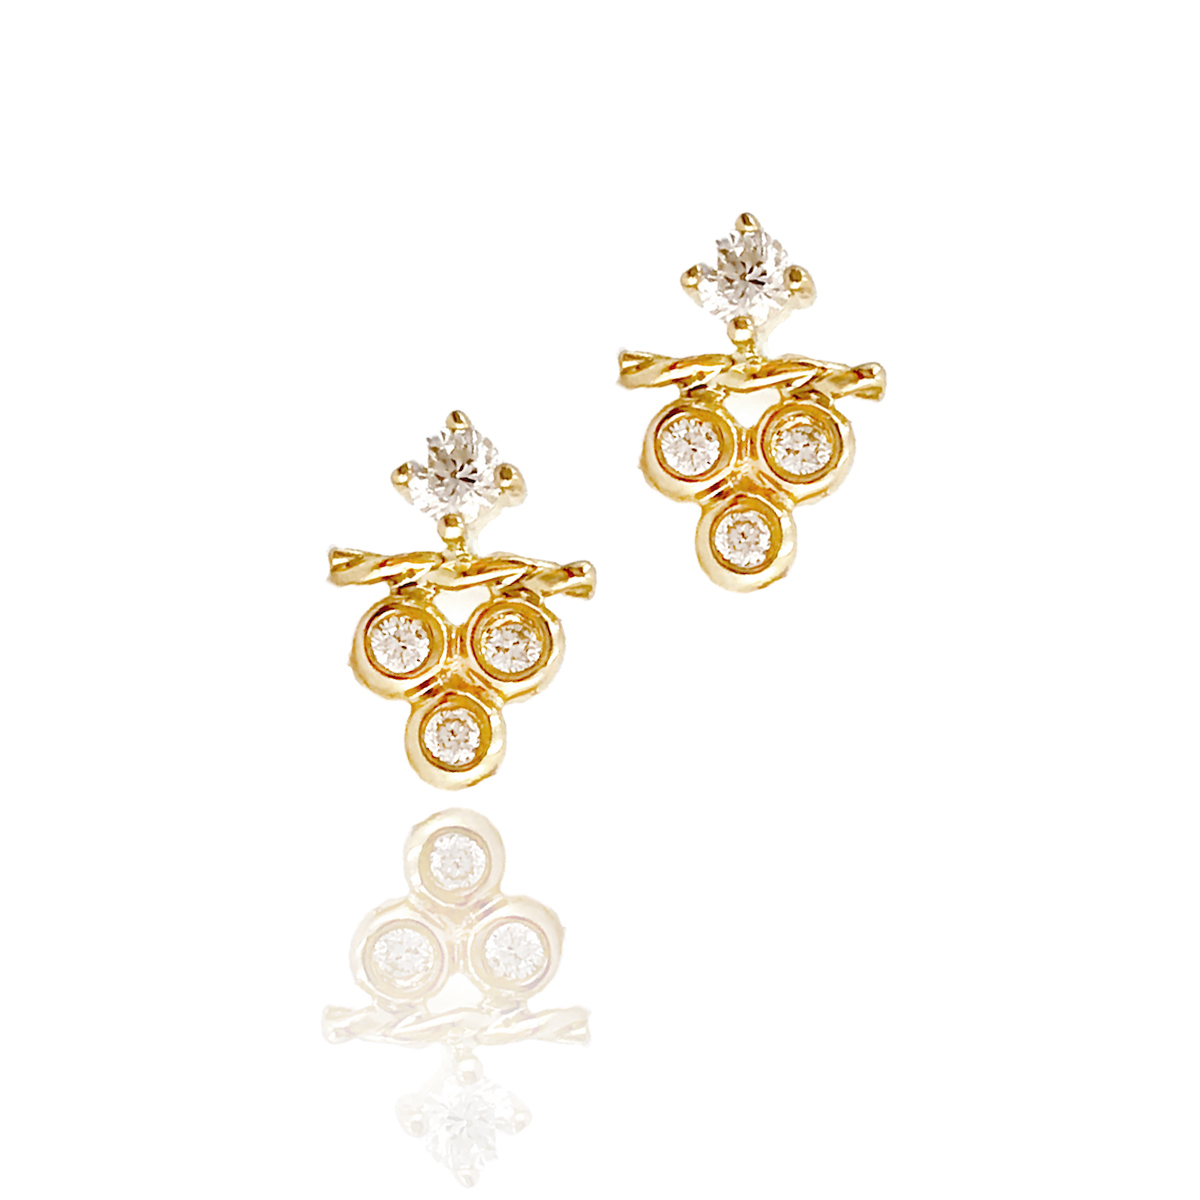 18k Gold Petite Diamond Cluster Stud Earrings